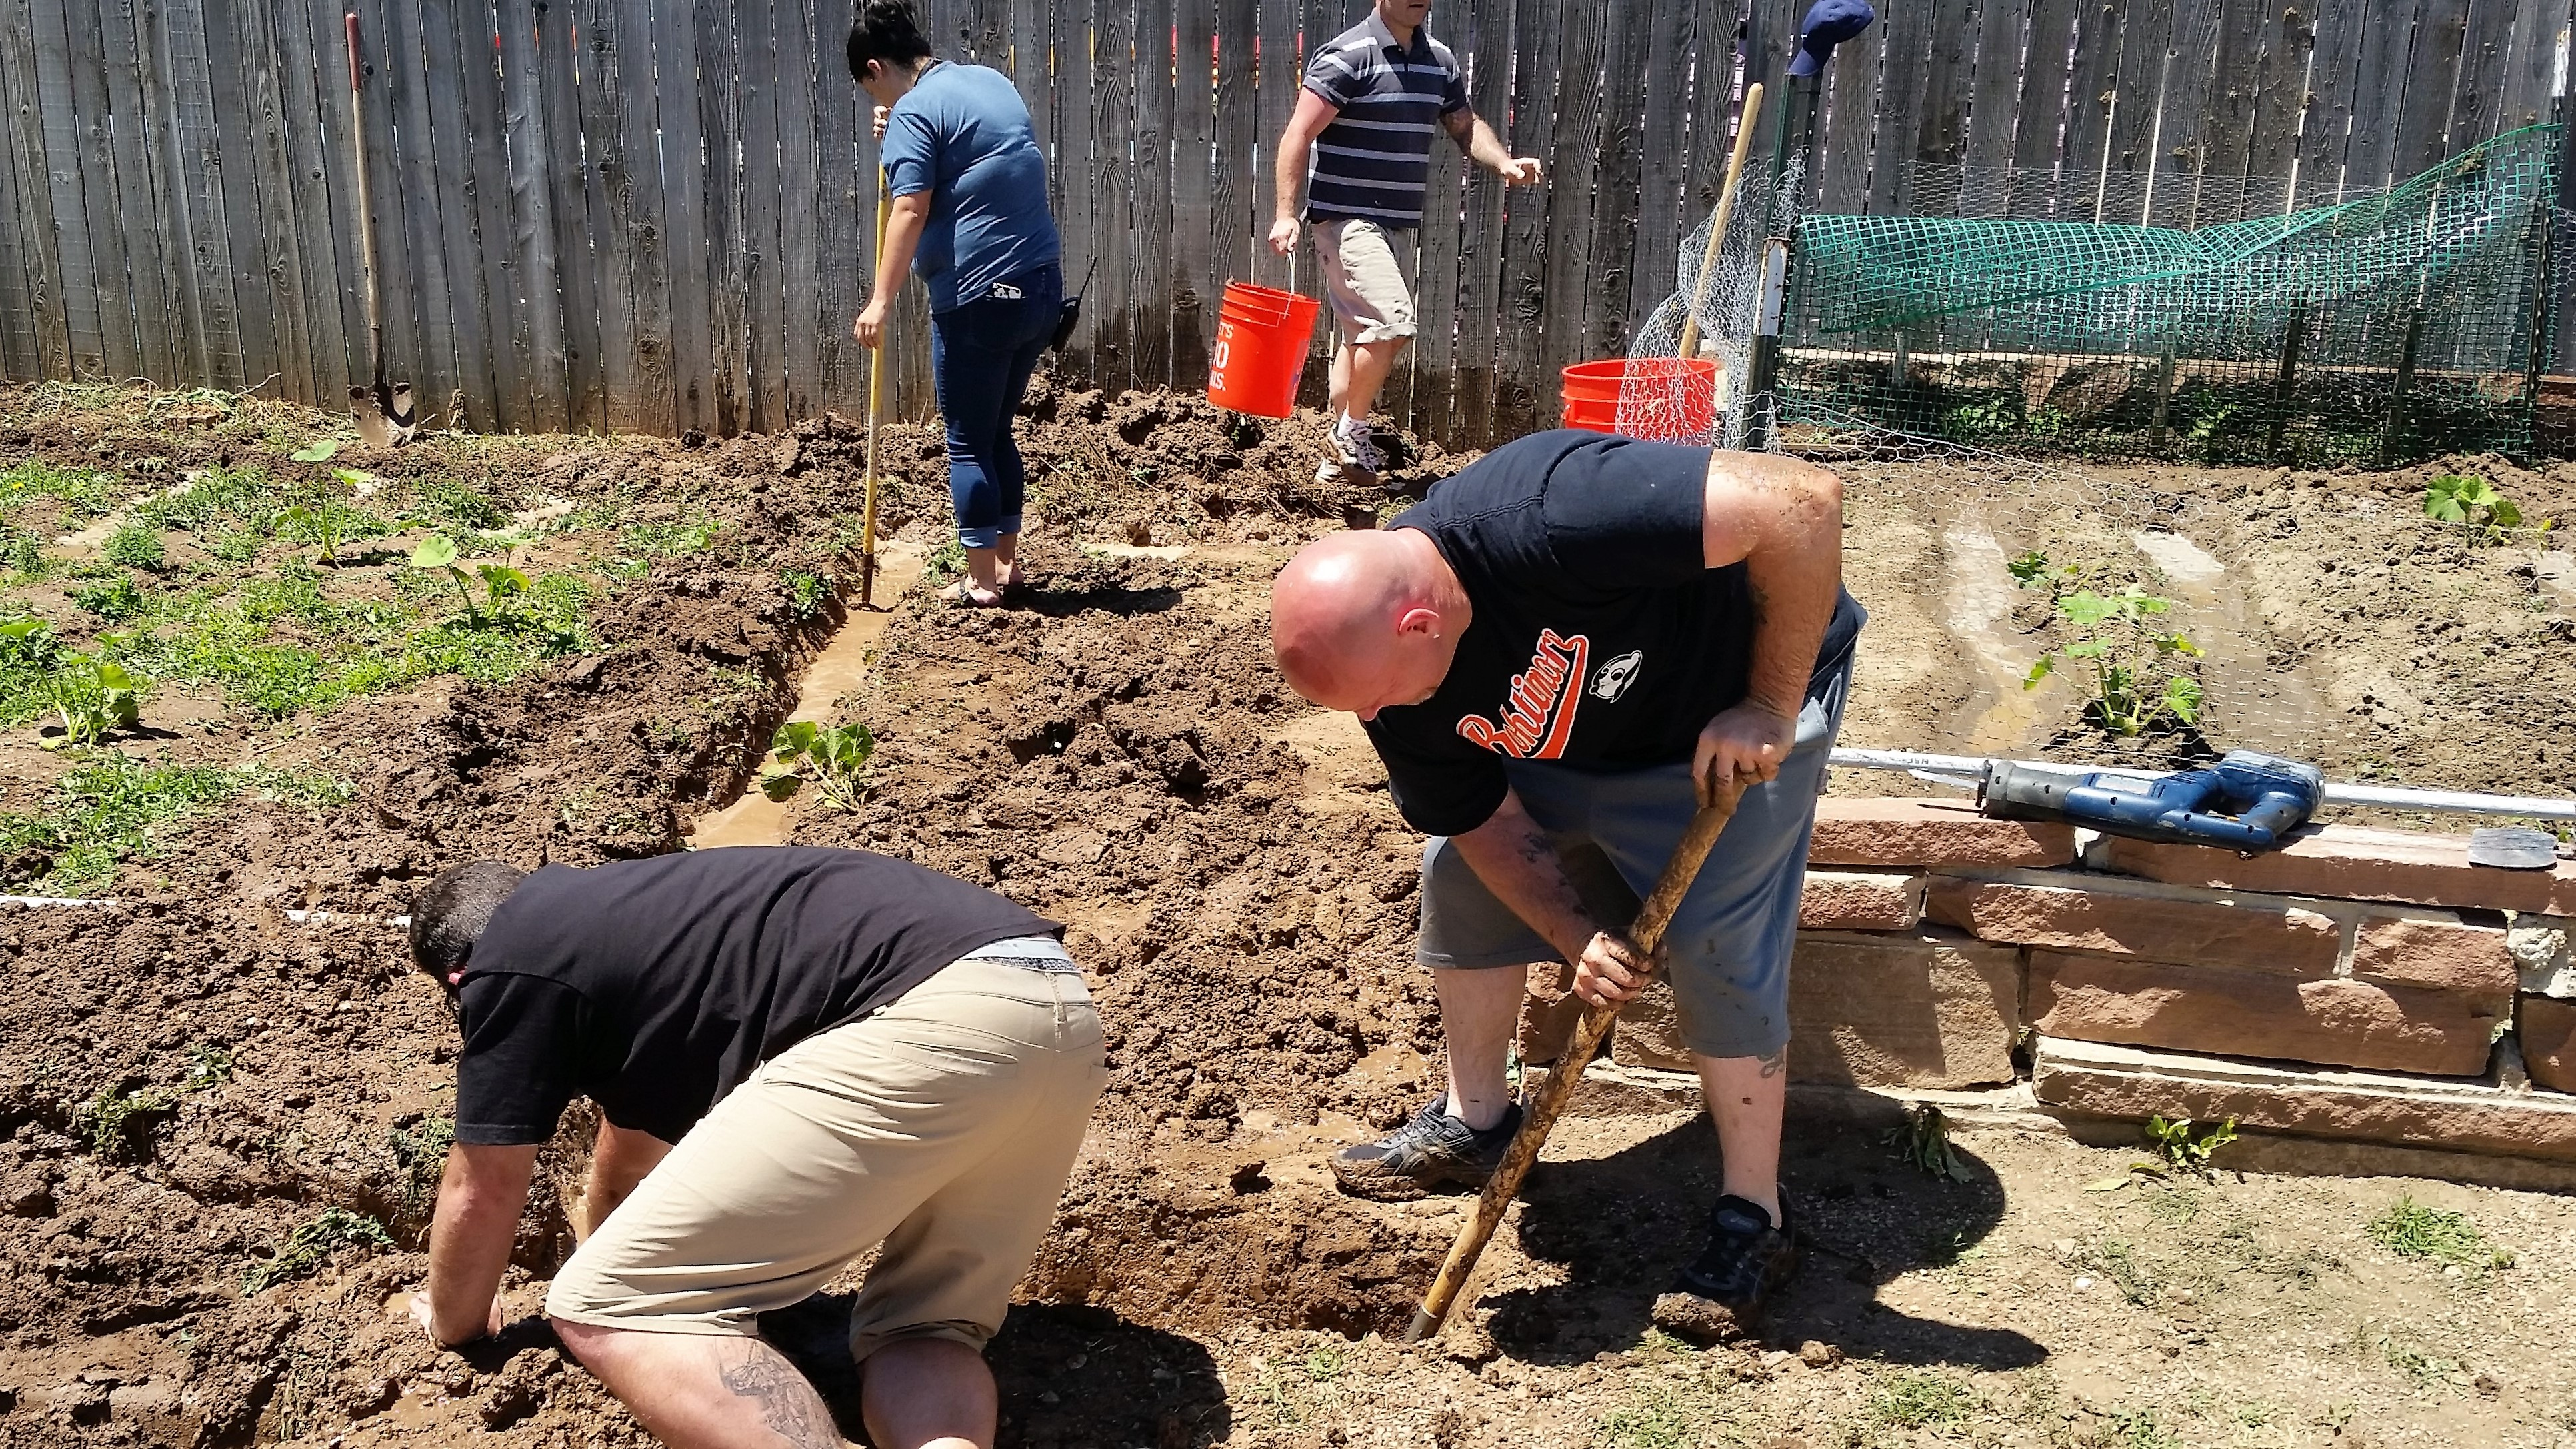 Image 6: Inspire others to grow (Community Corrections Garden & Farmer's Market)